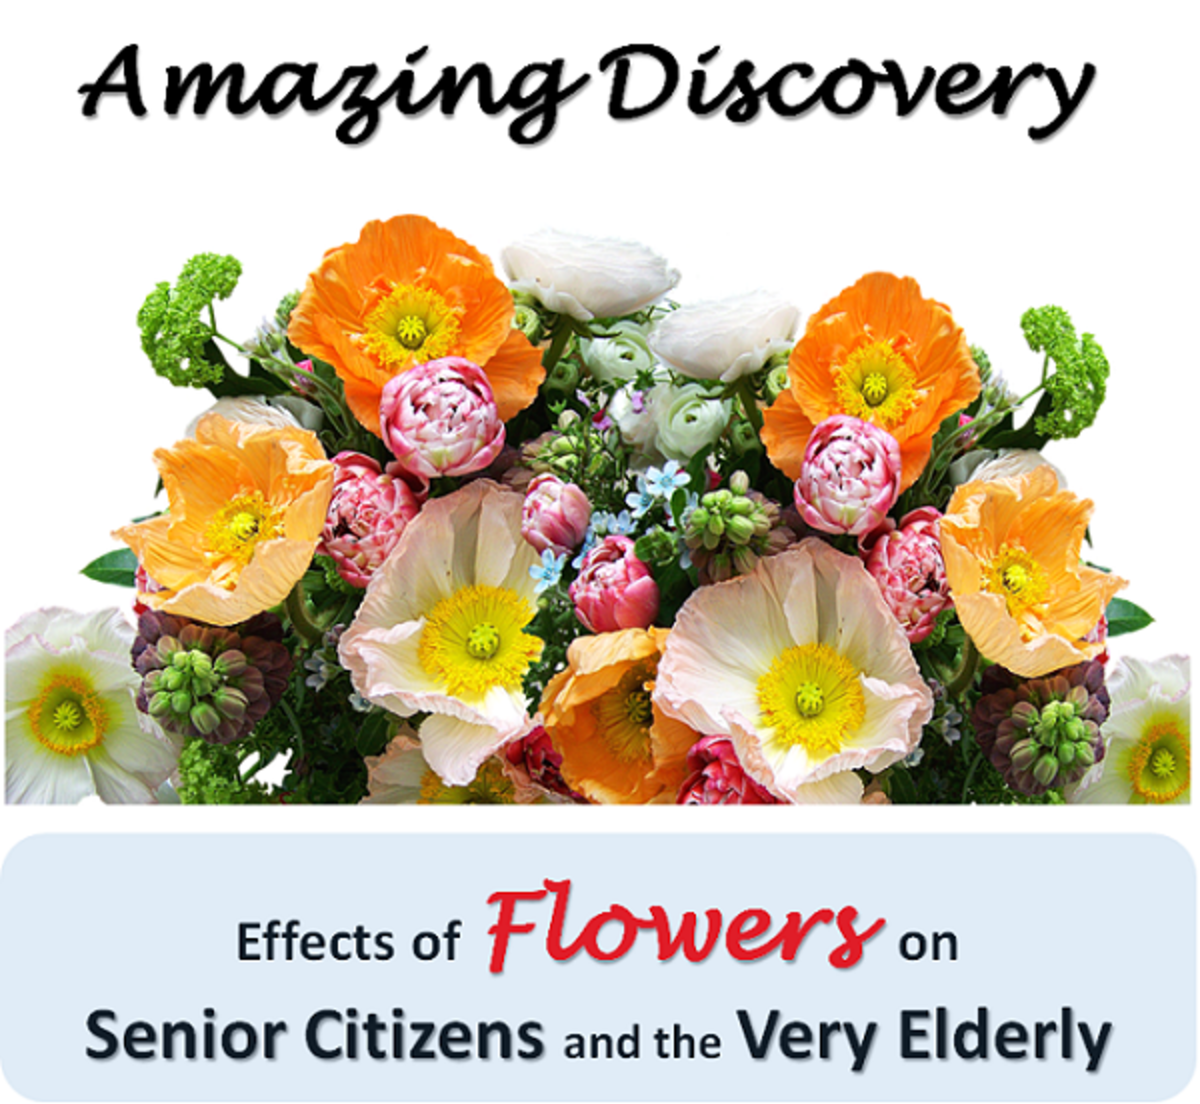 Amazing Discovery: Effects of Flowers on Senior Citizens and the Very Elderly